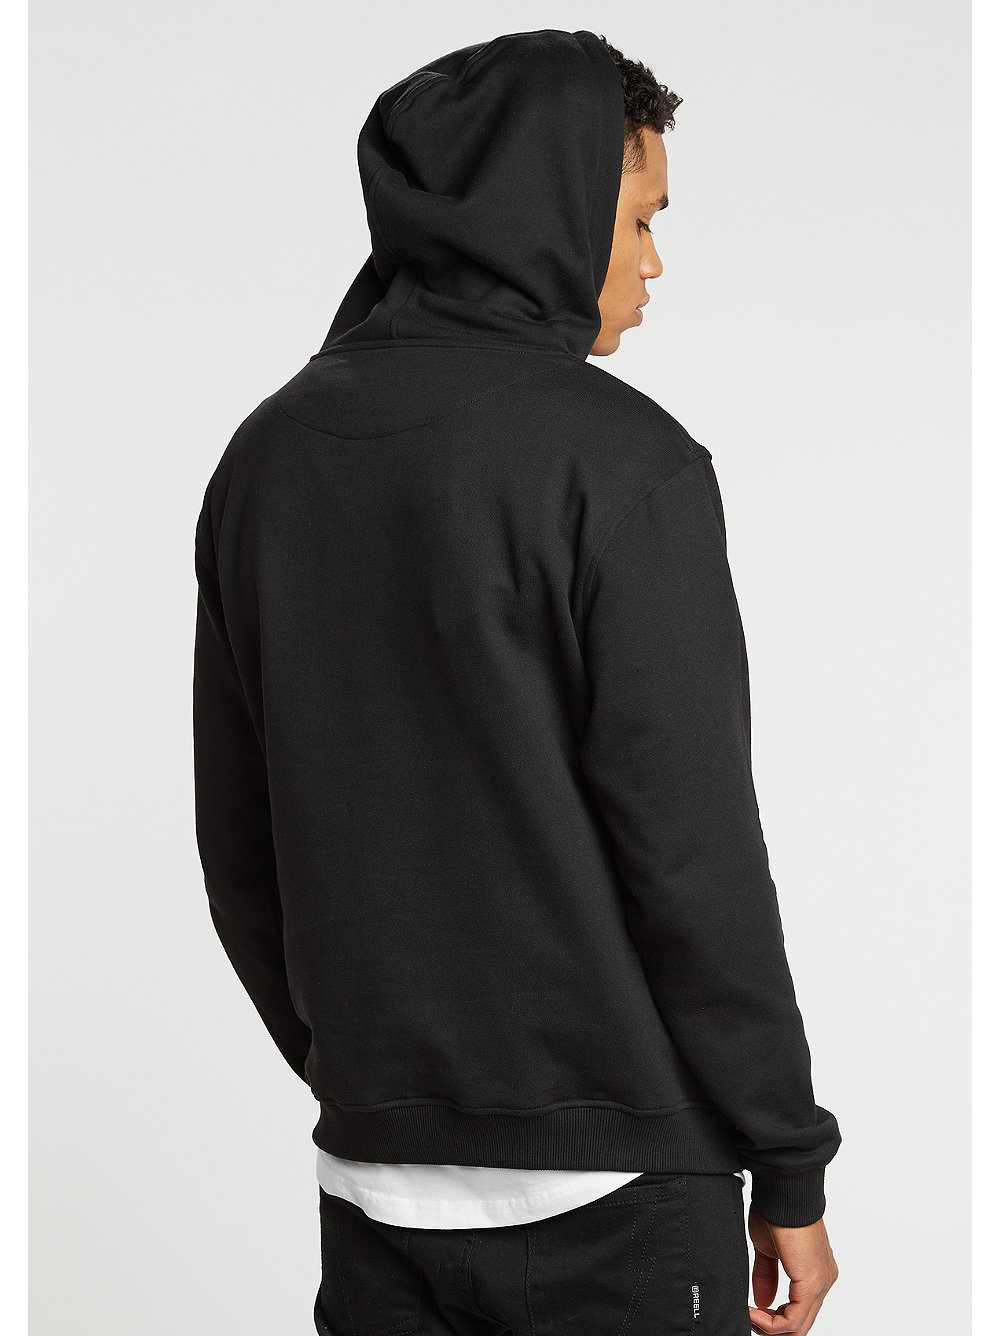 competitive price c3759 dcf79 SNIPES Box Logo Hoodie im SNIPES Onlineshop